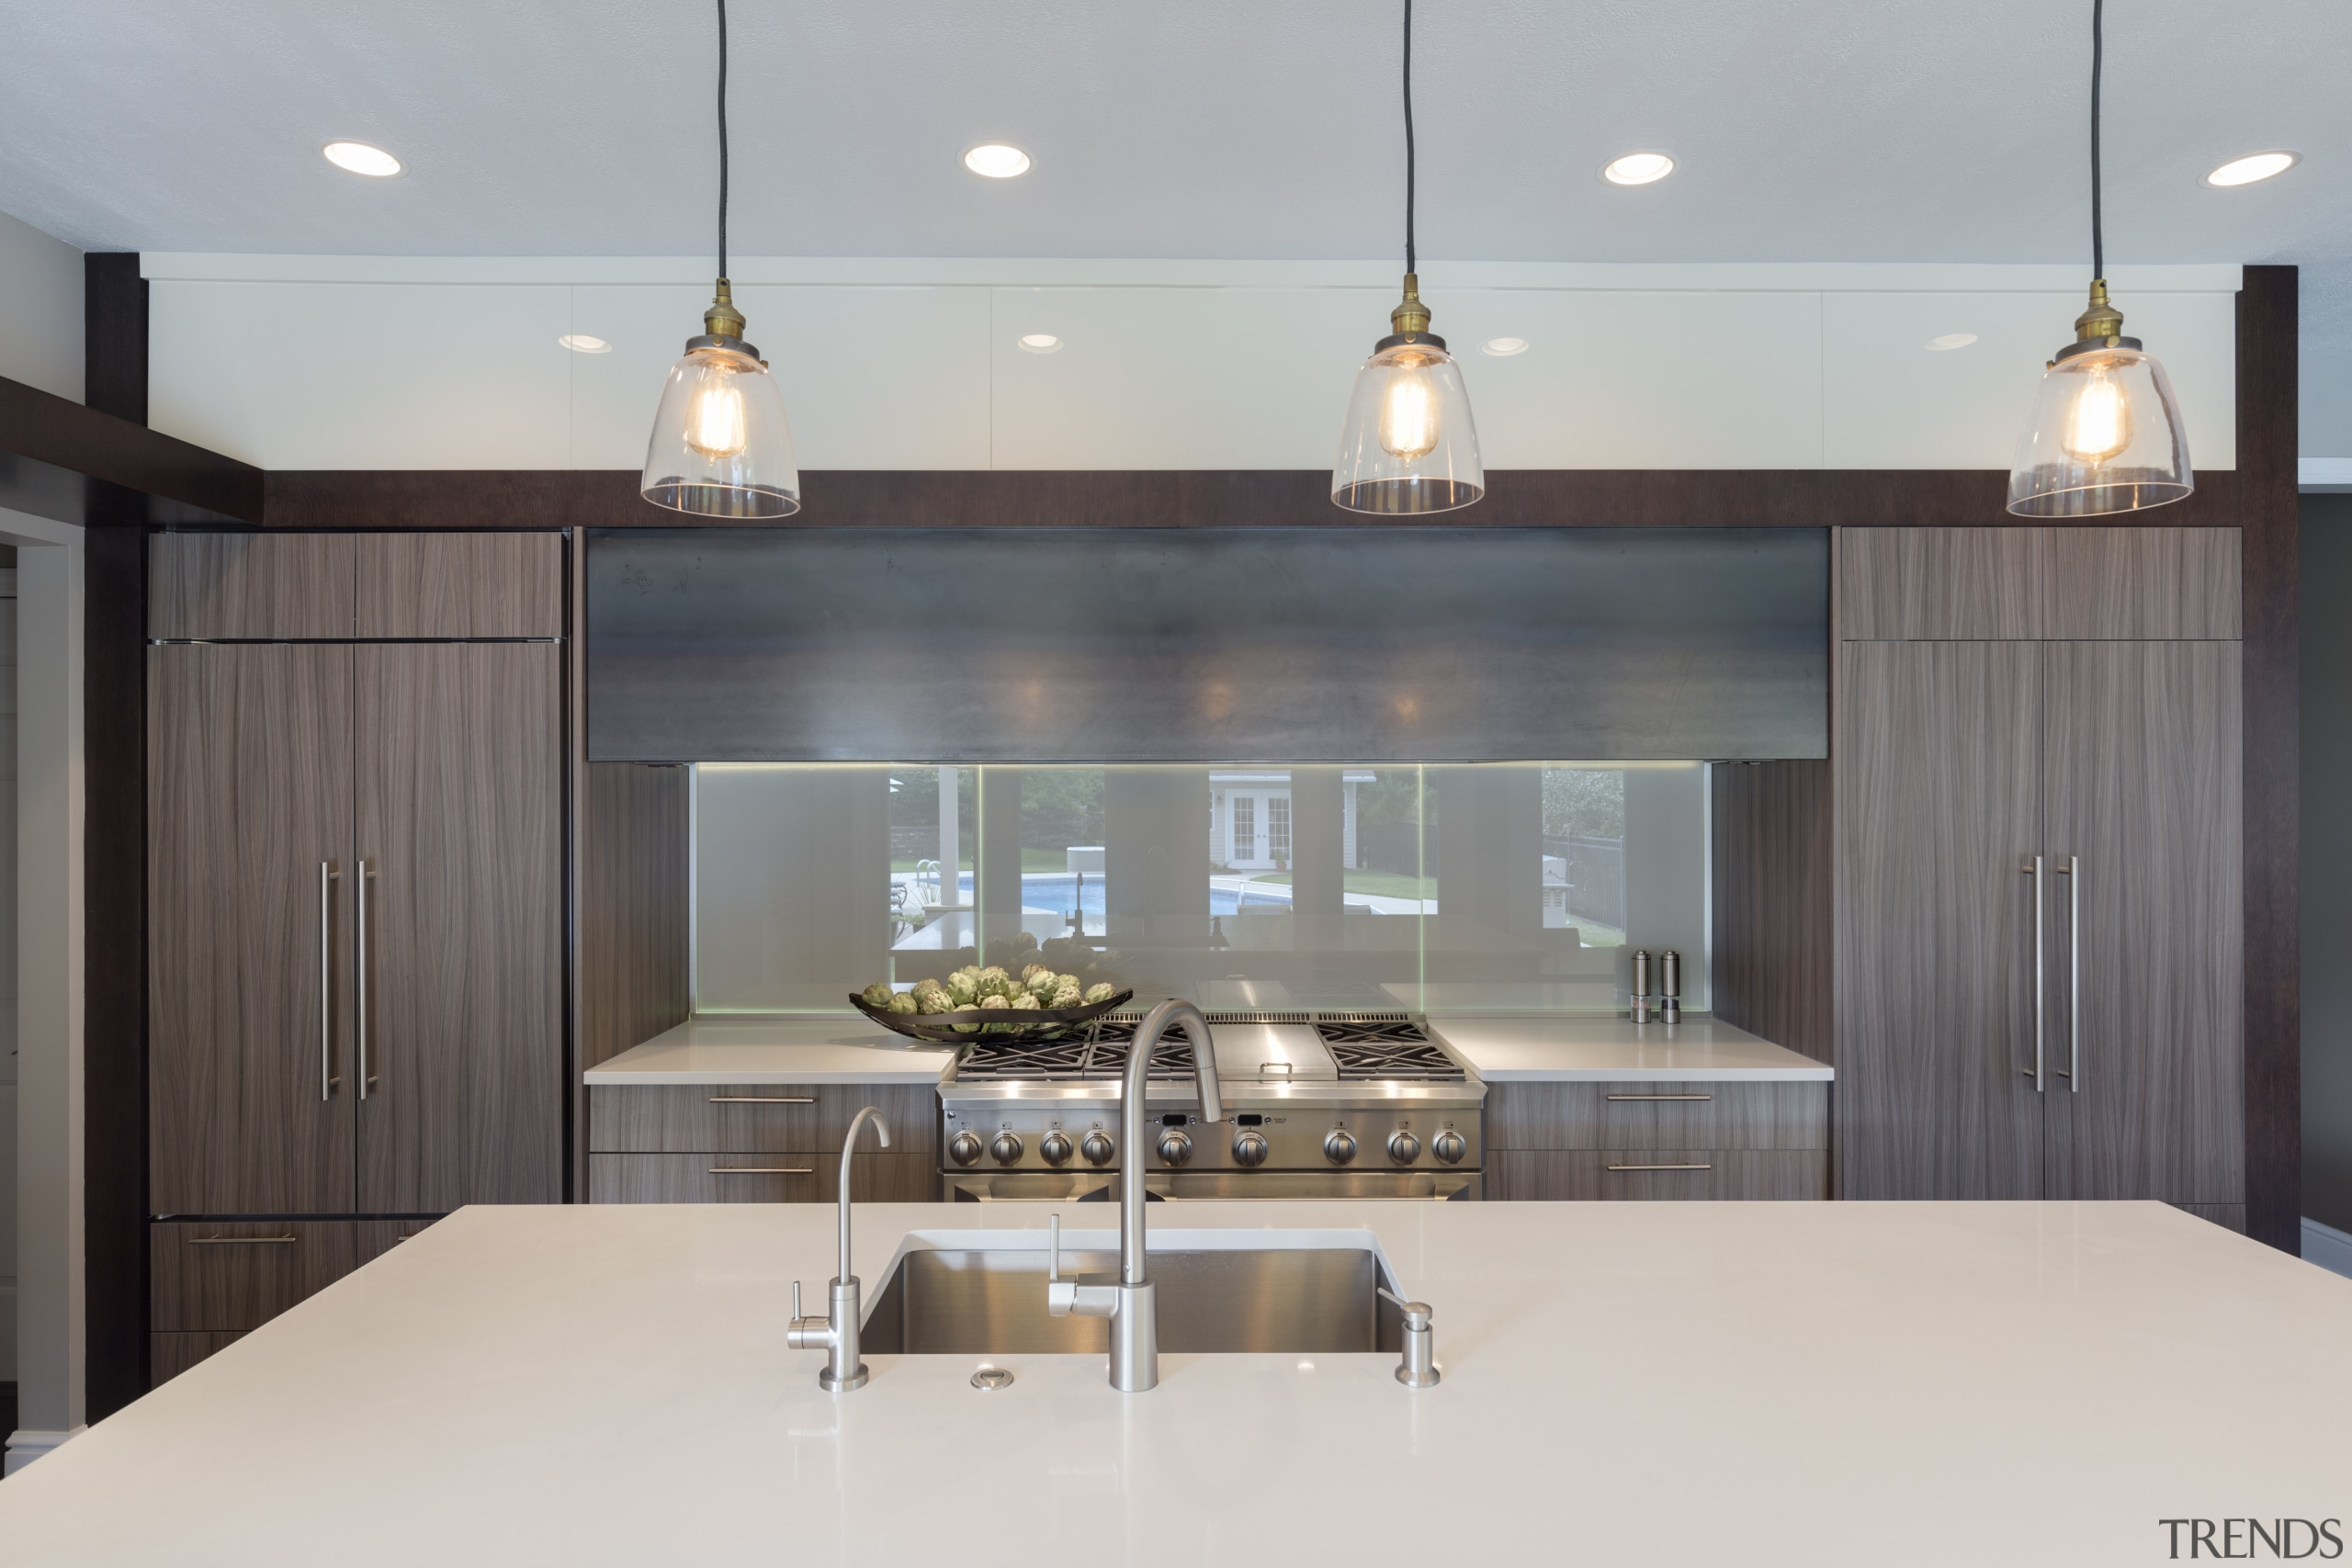 At night, the designer lighting and embedded LEDs architecture, interior design, kitchen, light fixture, lighting, product design, gray